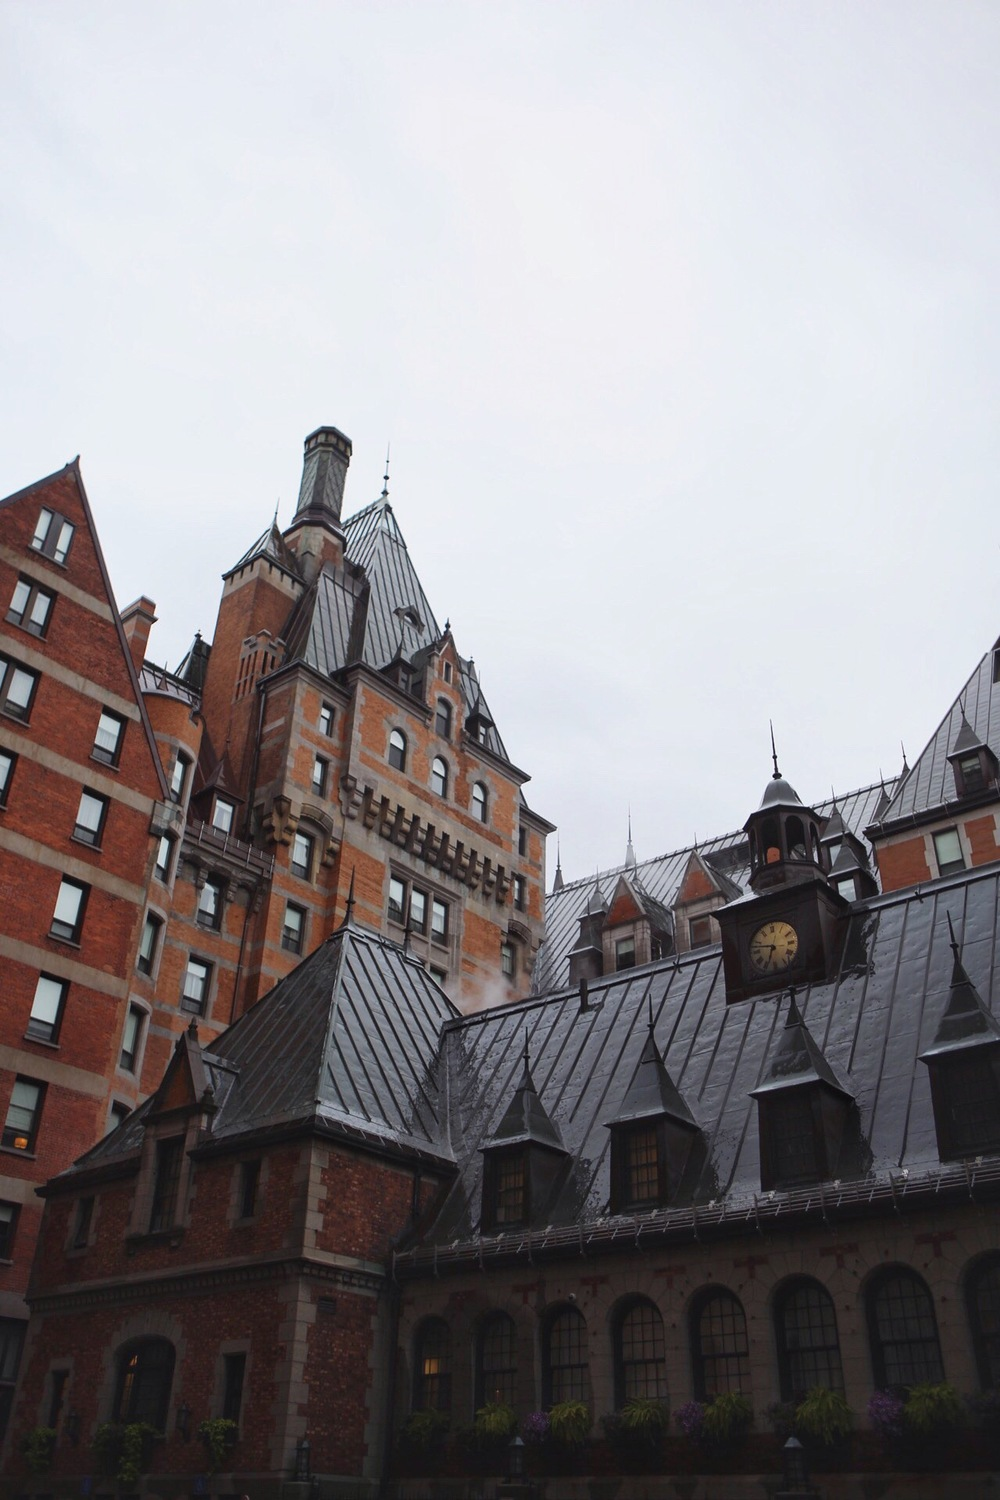 Chateaux Frontenac in Quebec.